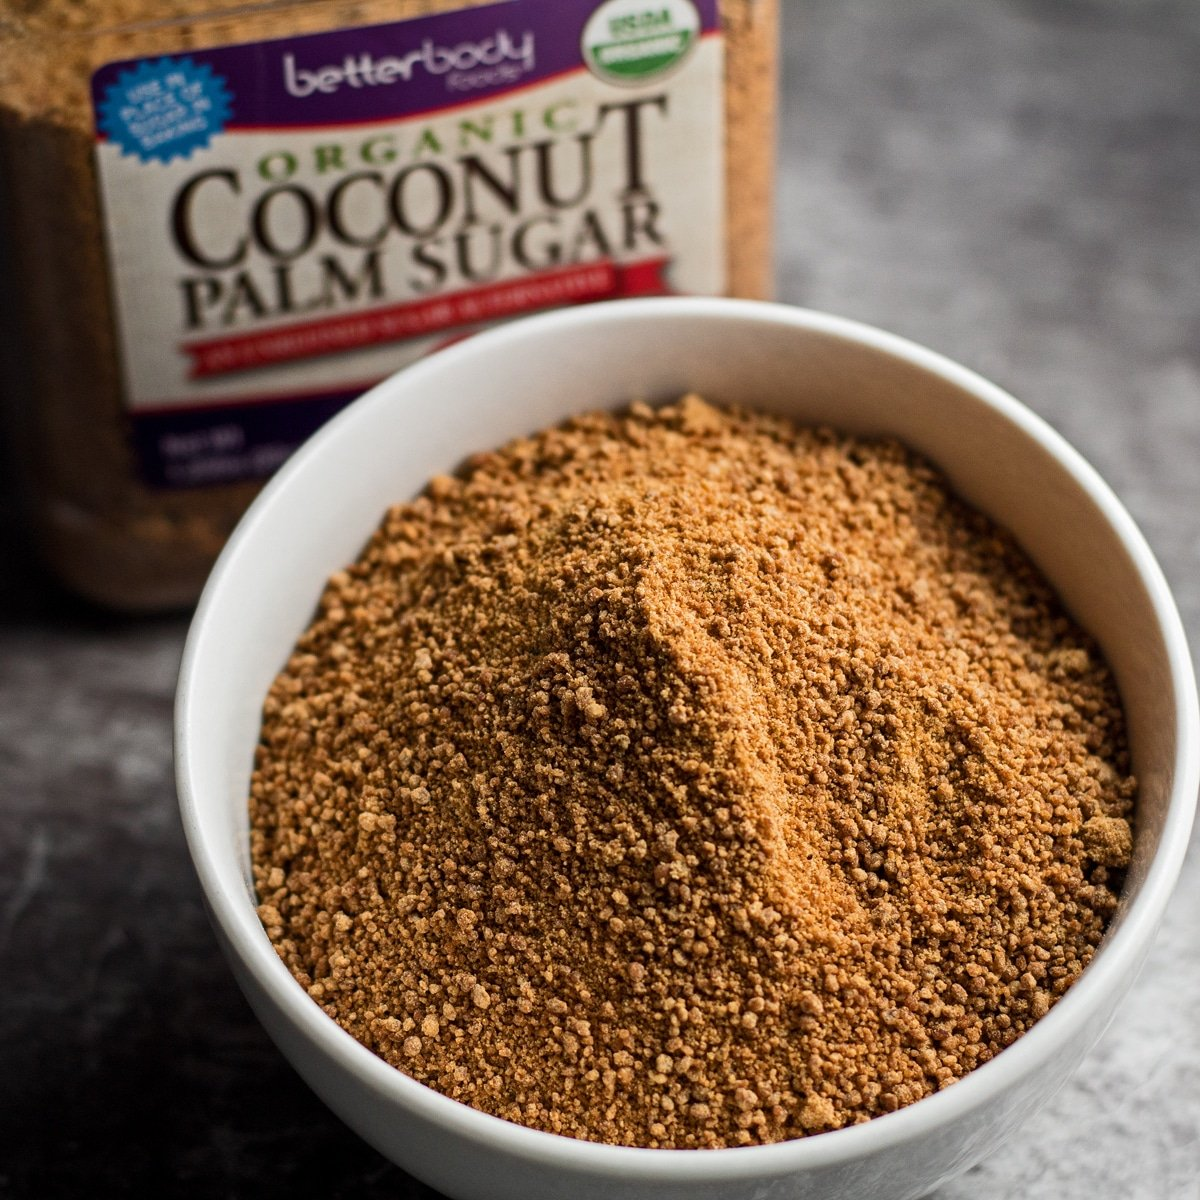 Large square coconut sugar in a bowl with packaging in background.